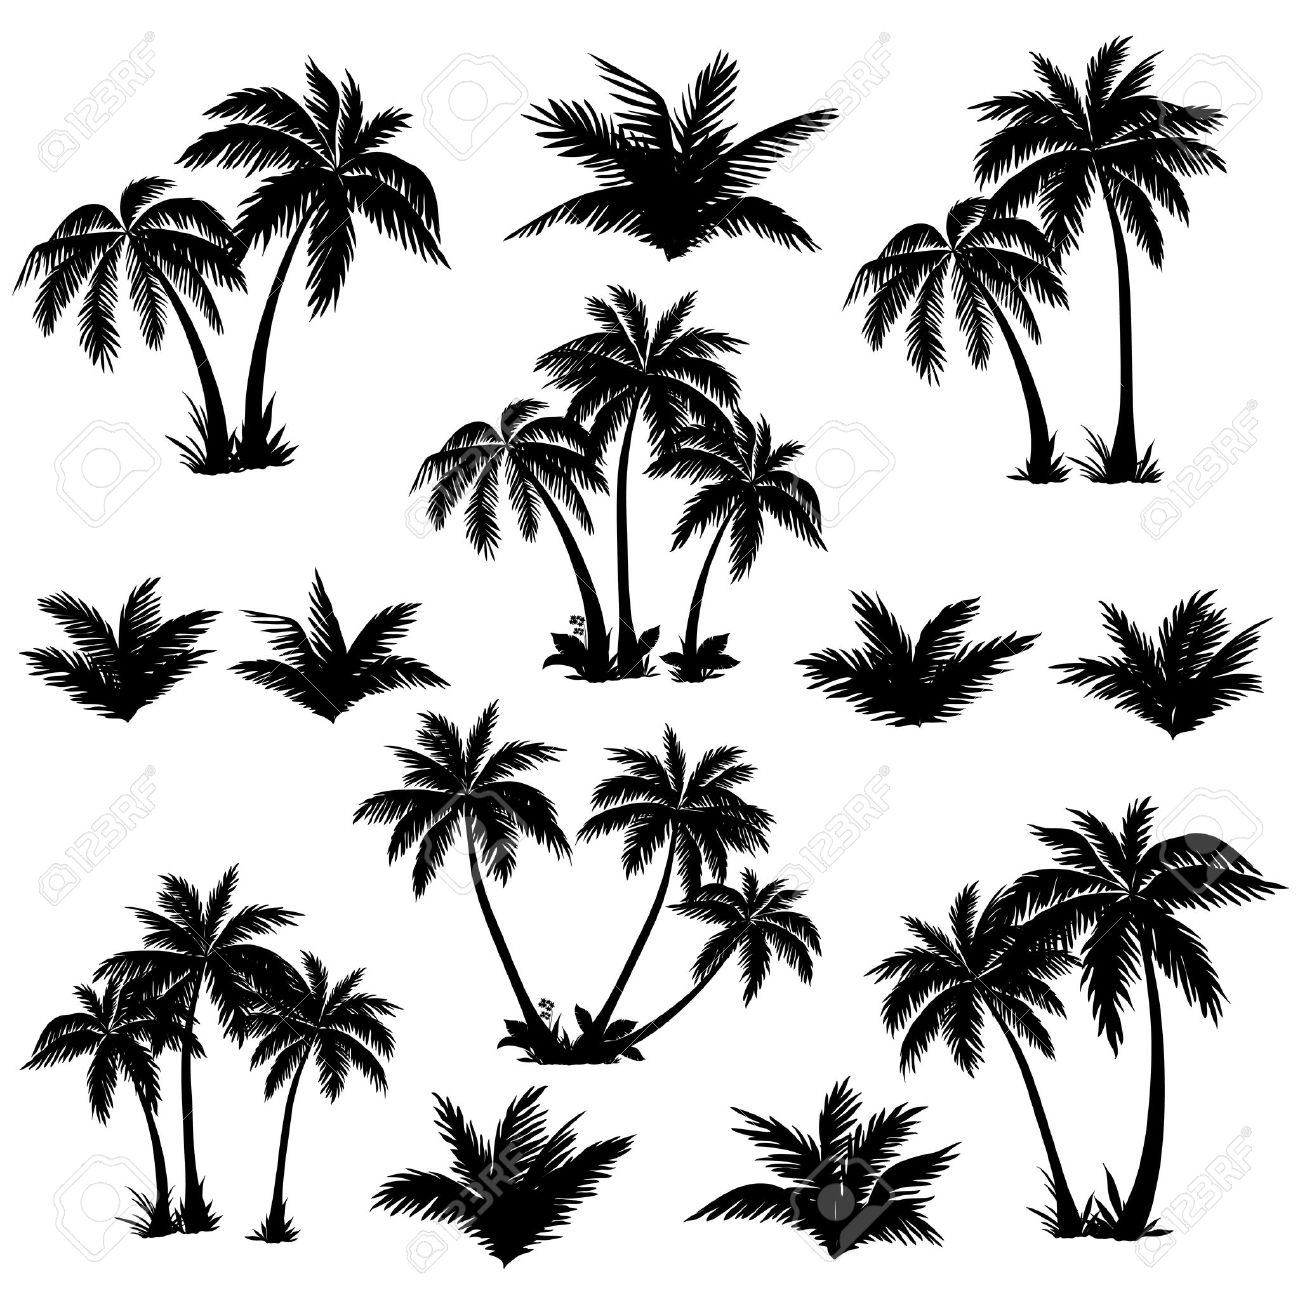 Set tropical palm trees with leaves, mature and young plants, black silhouettes isolated on white background Vector - 29836595